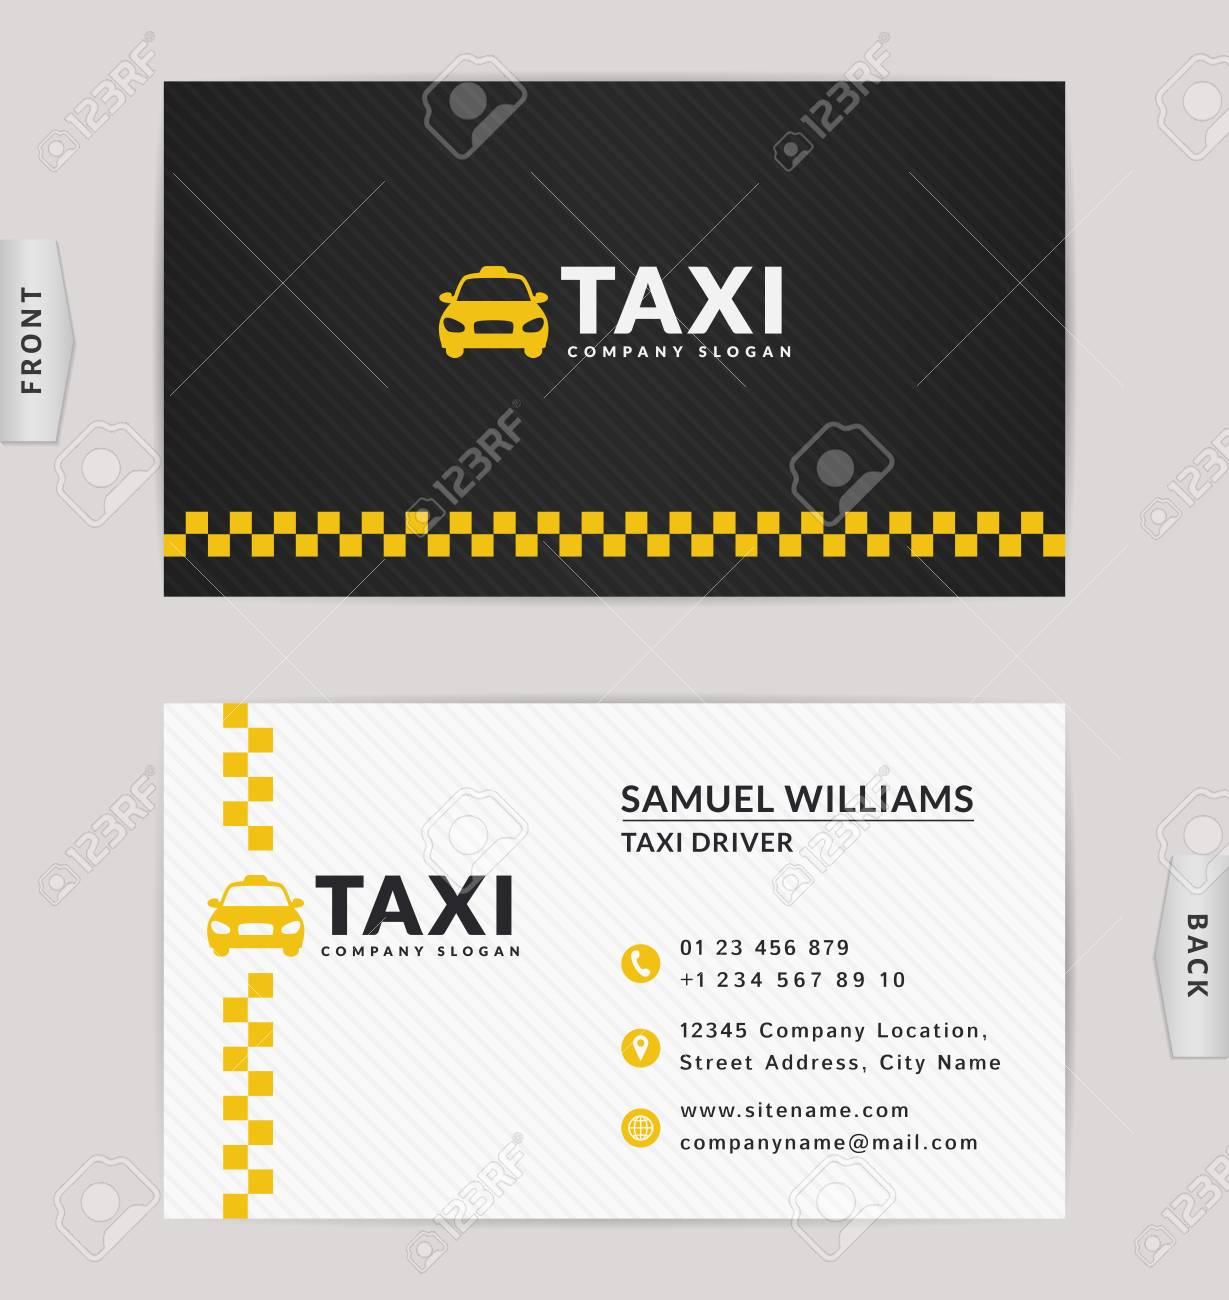 Business Card Design In Black White And Yellow Colors Vector